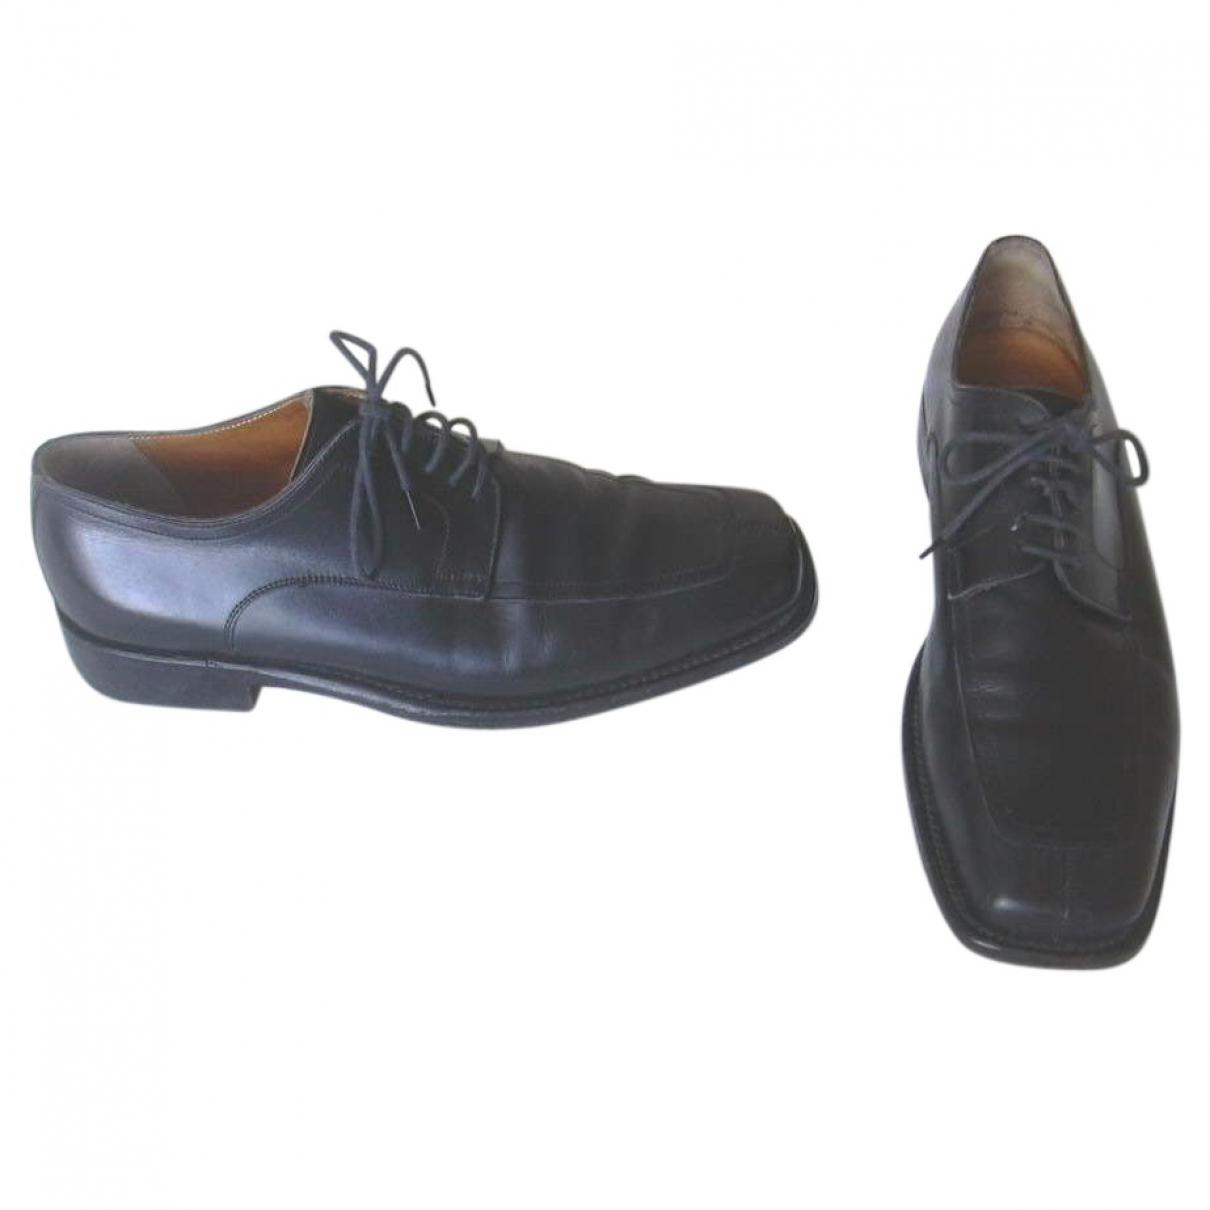 Pre-owned - Leather lace ups Herm icoRiv